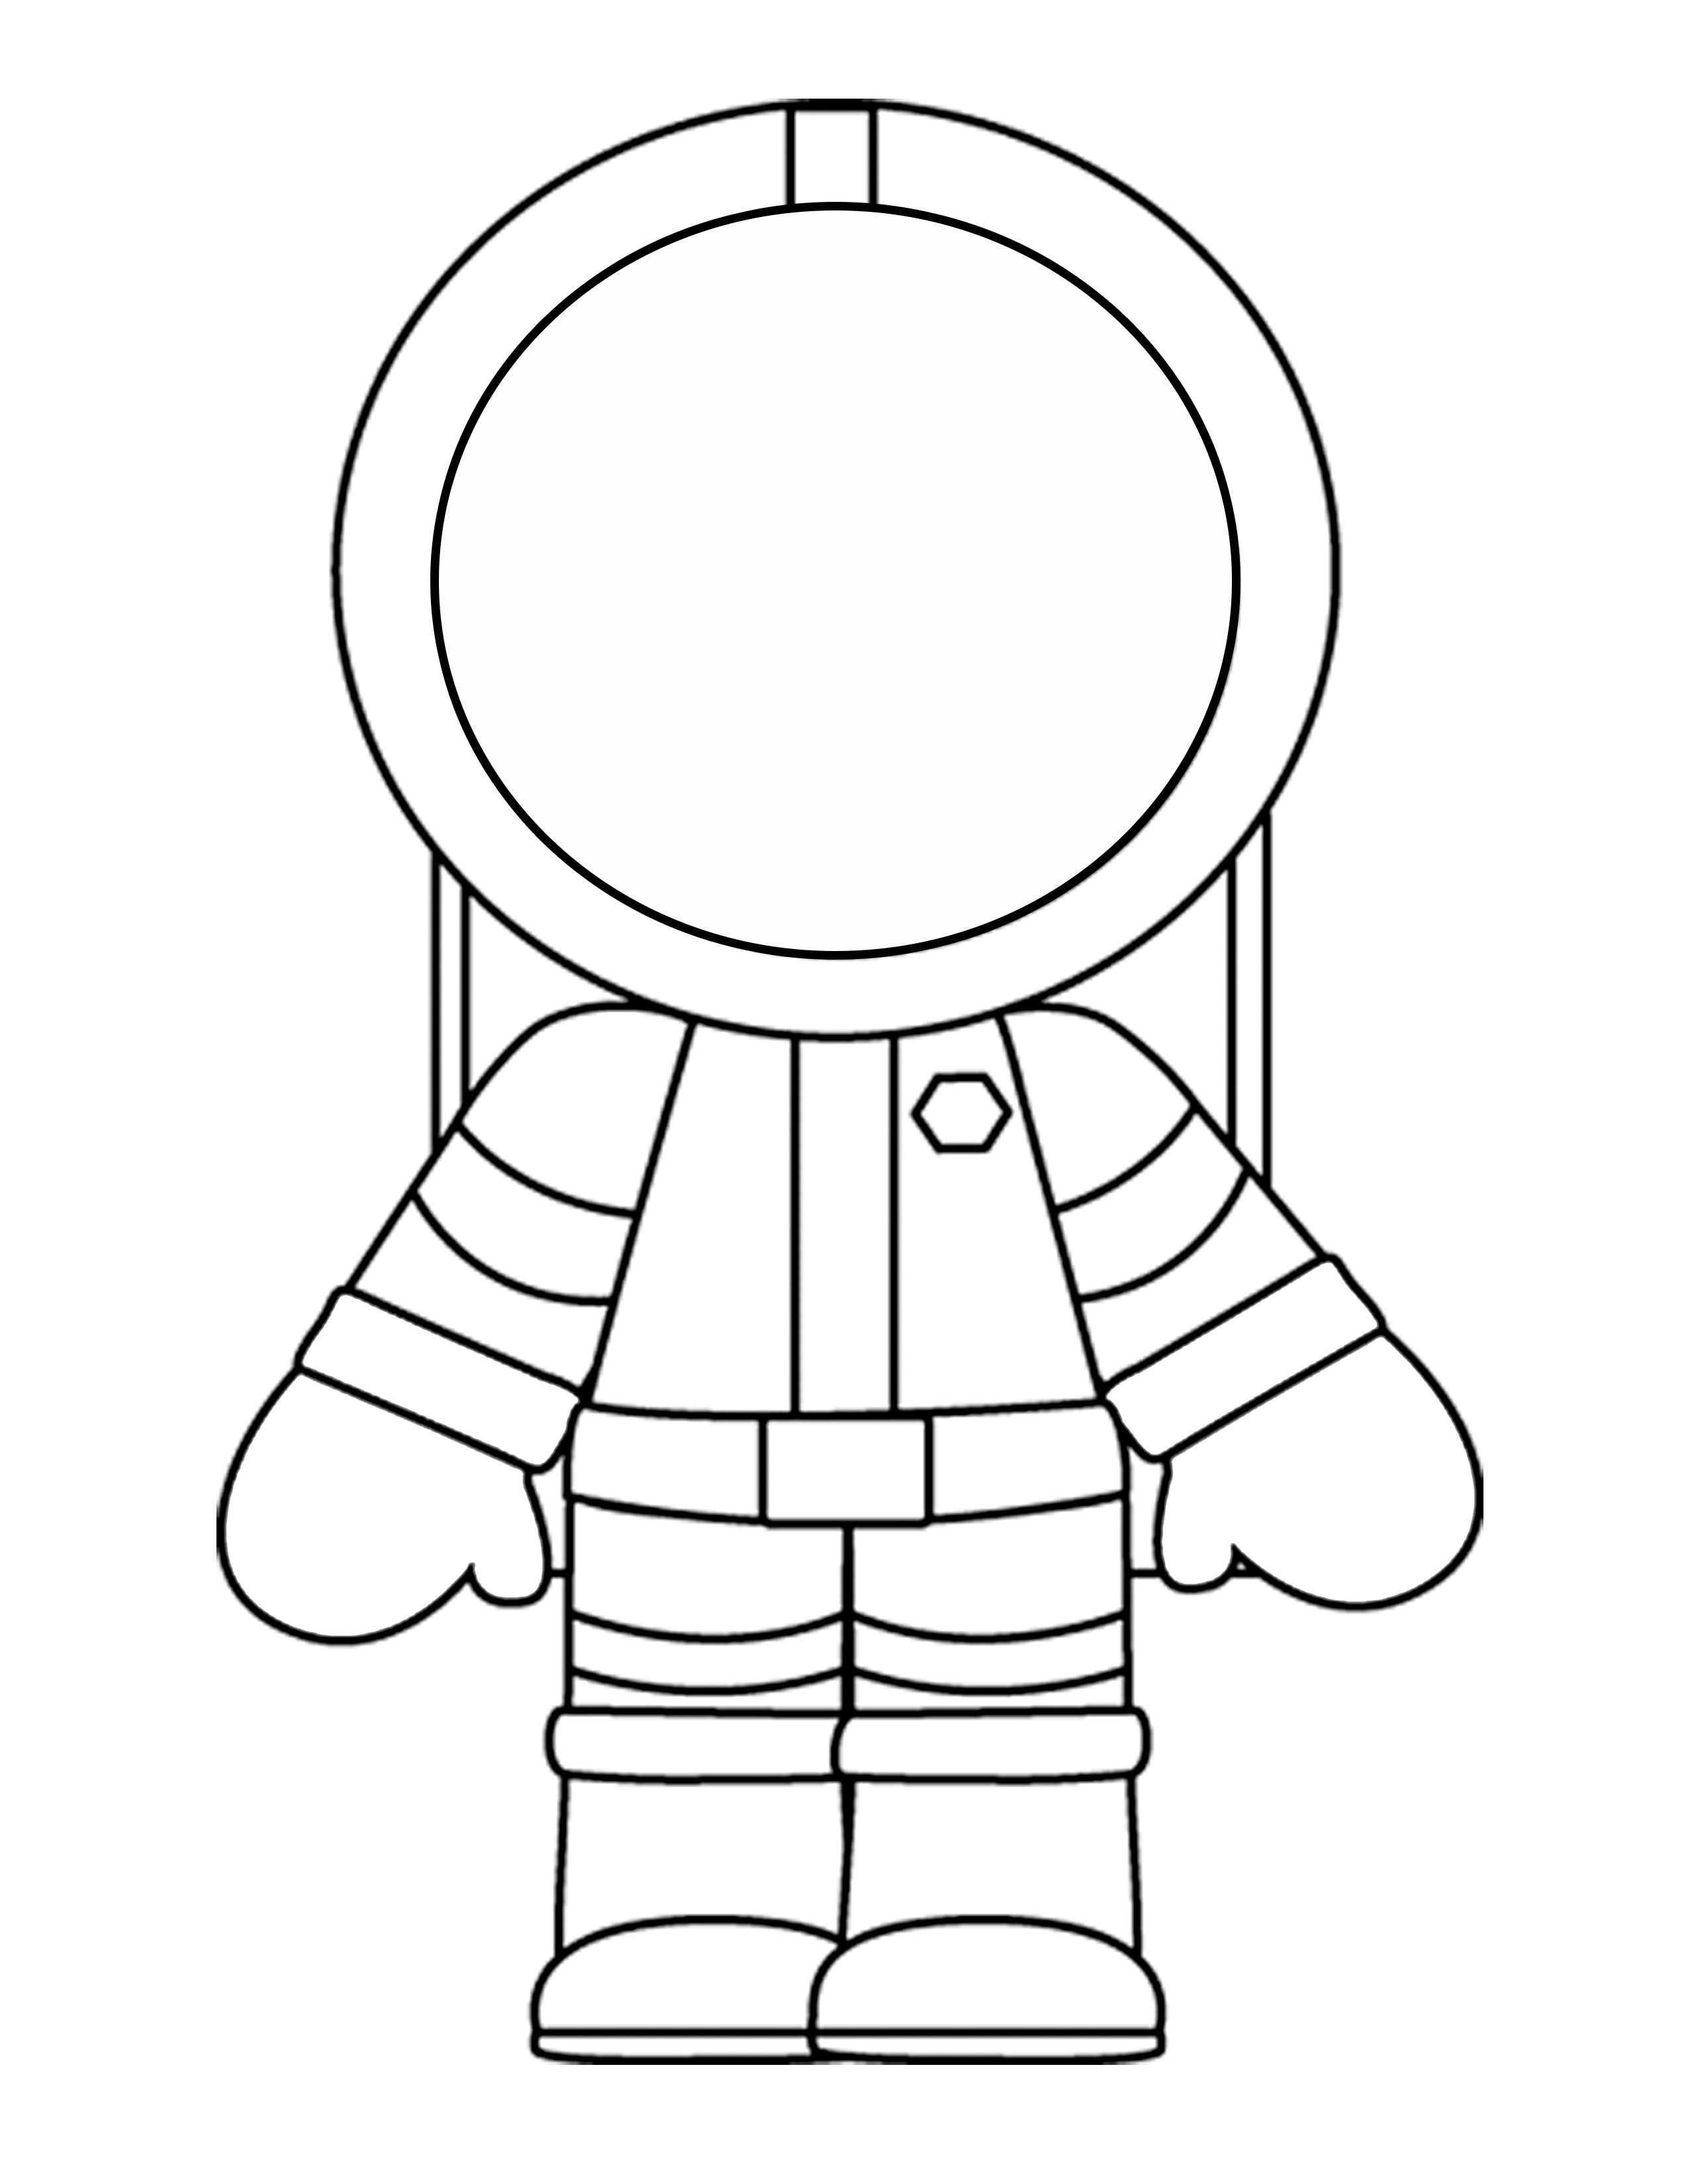 Astronaut clipart printable. Template for the mini